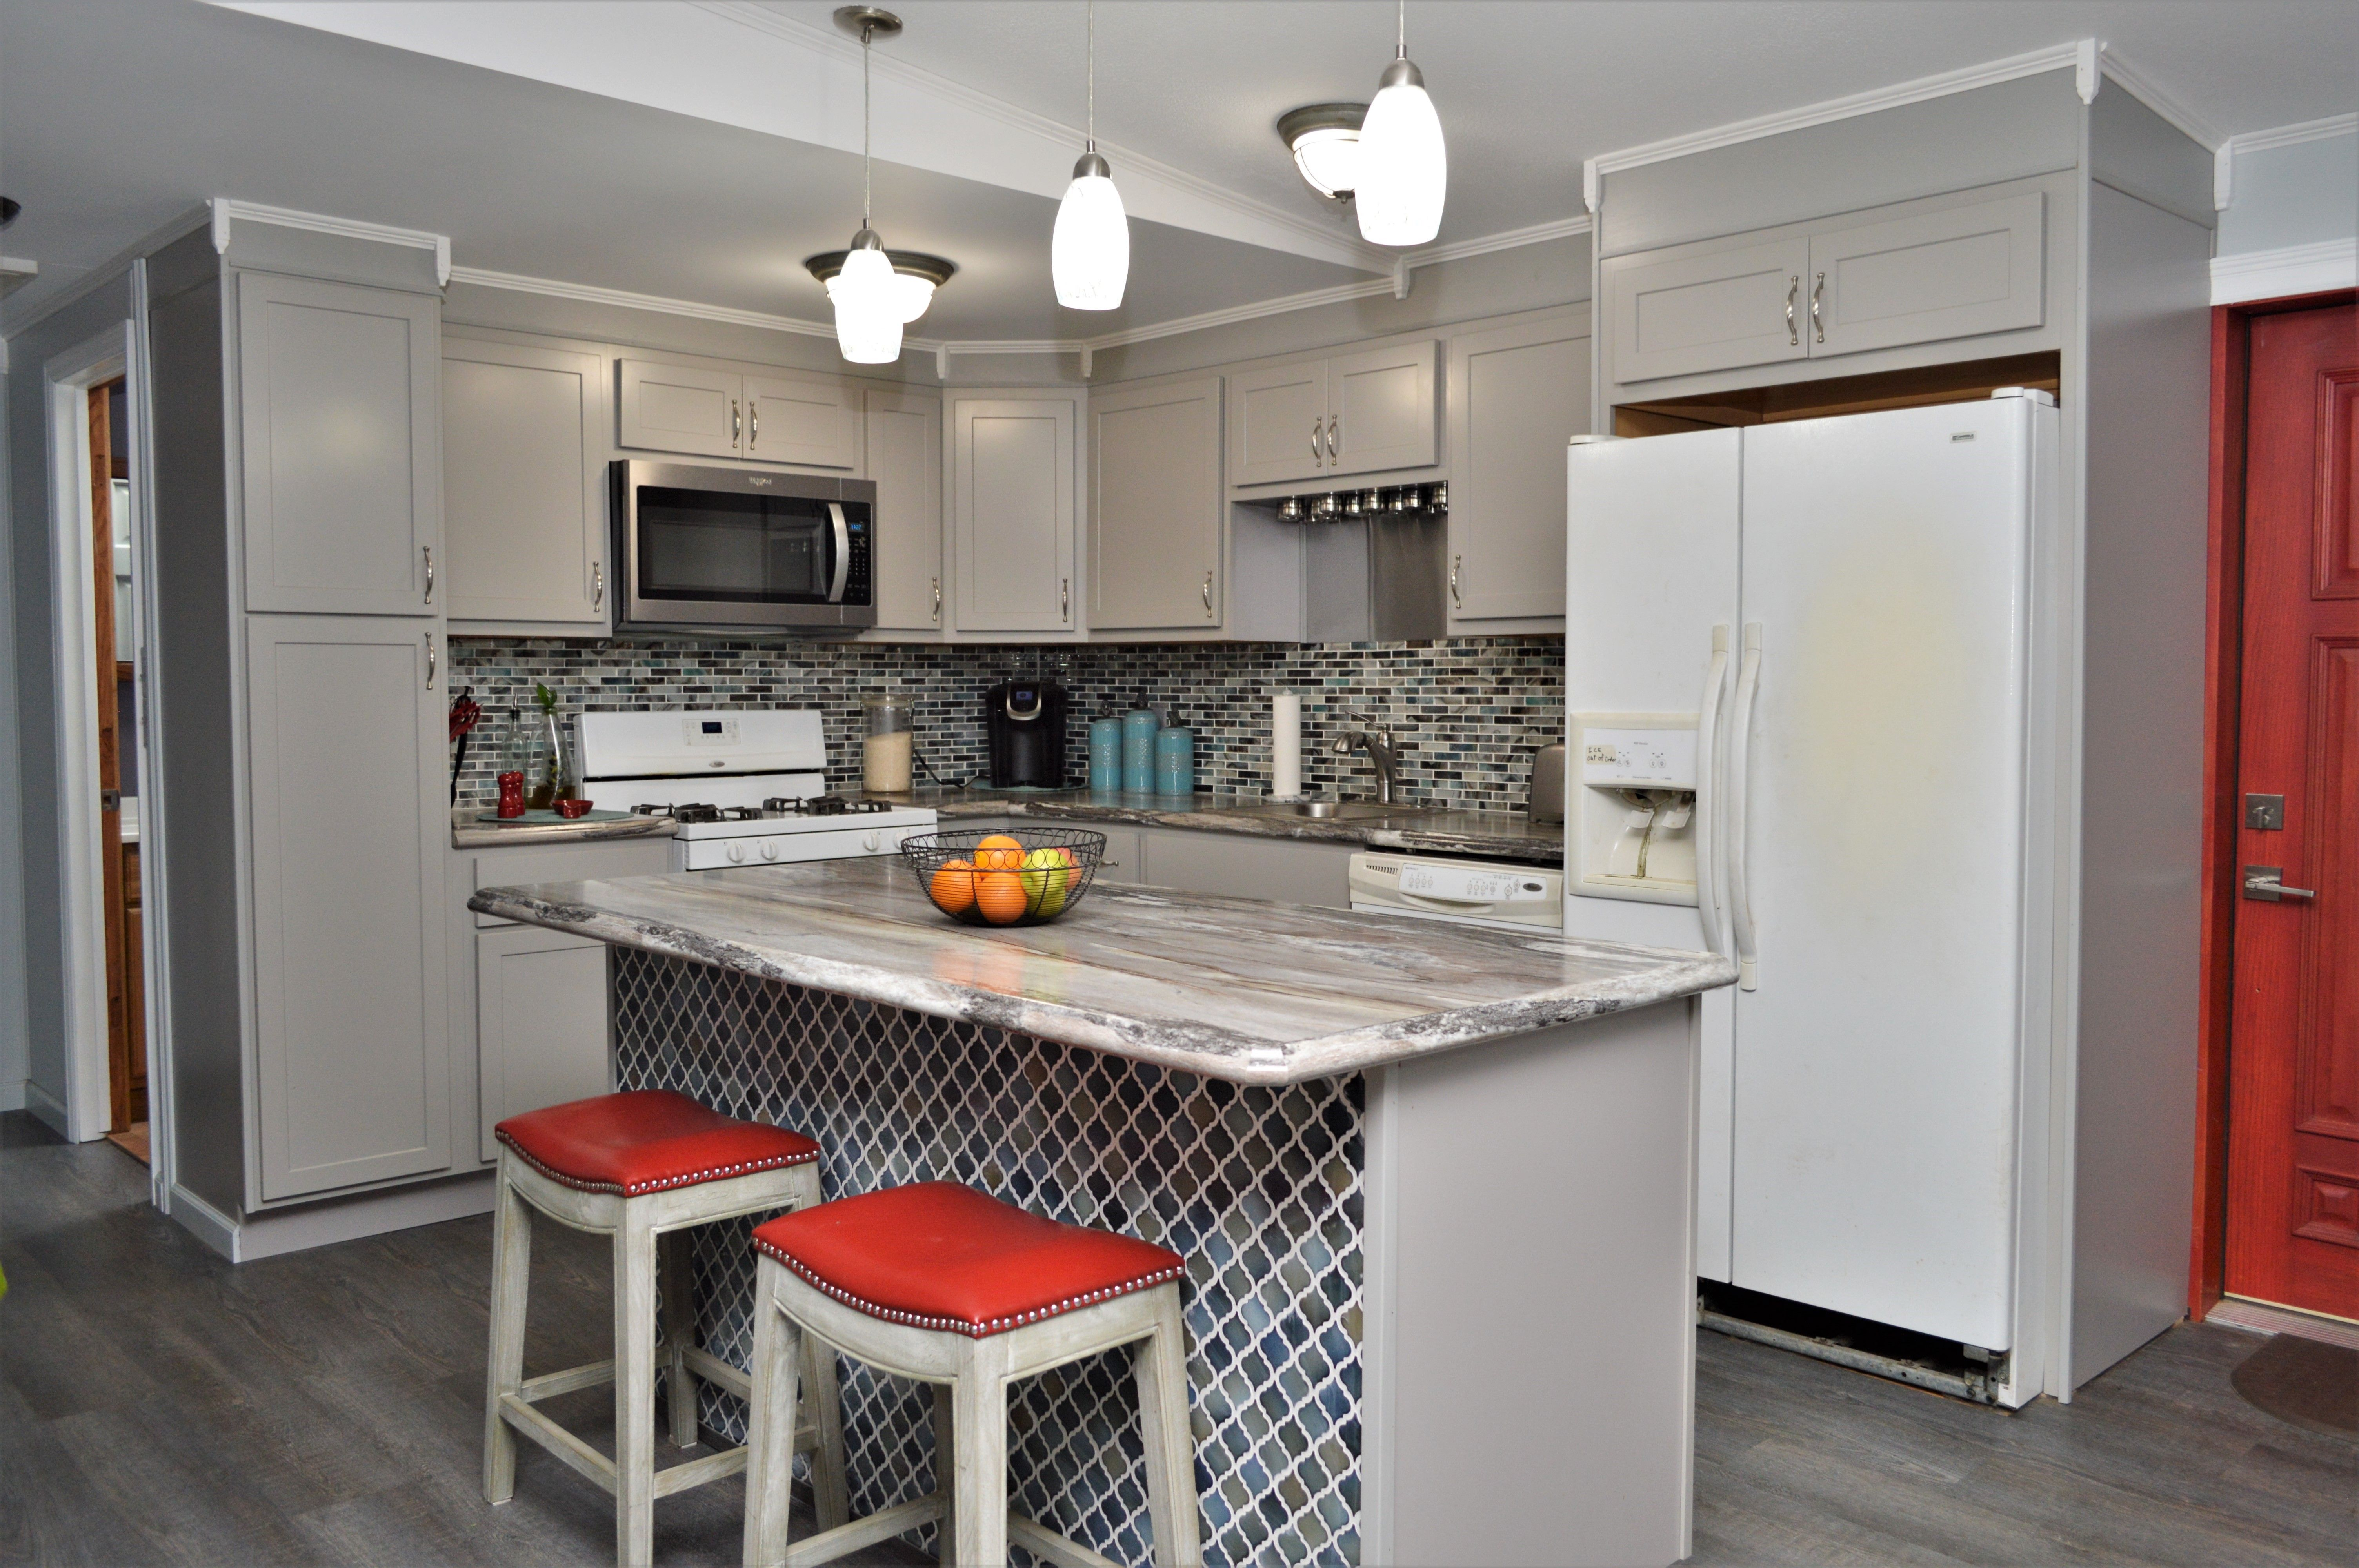 Baileytown Select Maple Limestone Finish Georgetown Door Style Cabinetry Kitchens Bathrooms Home Decor